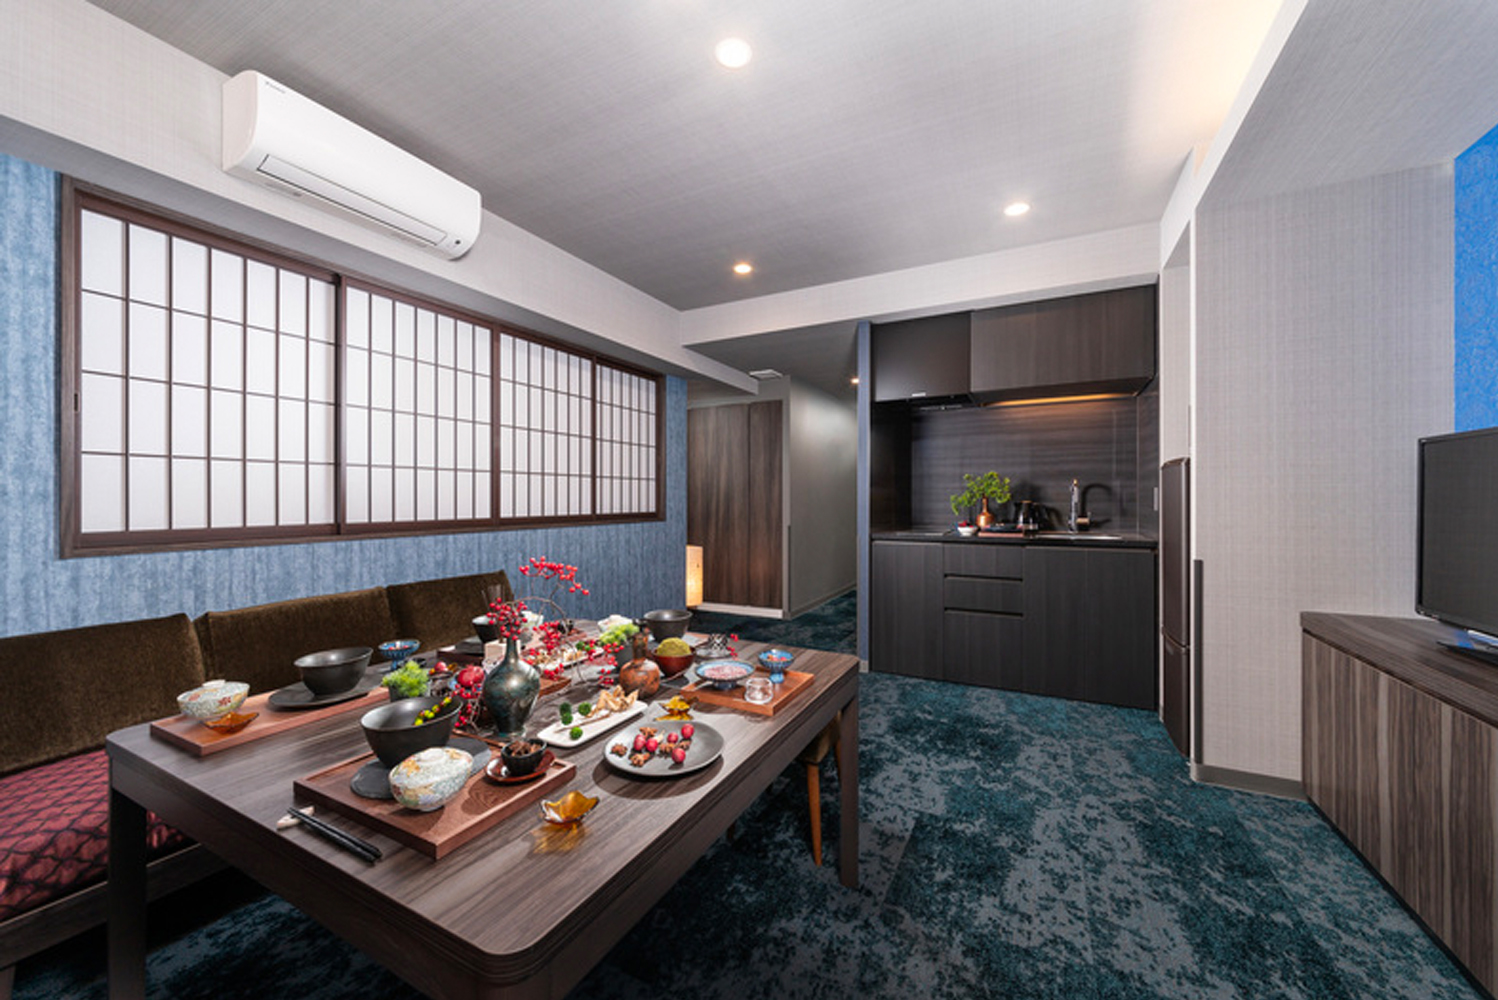 All guestrooms are equipped with a kitchen as well as dining space.